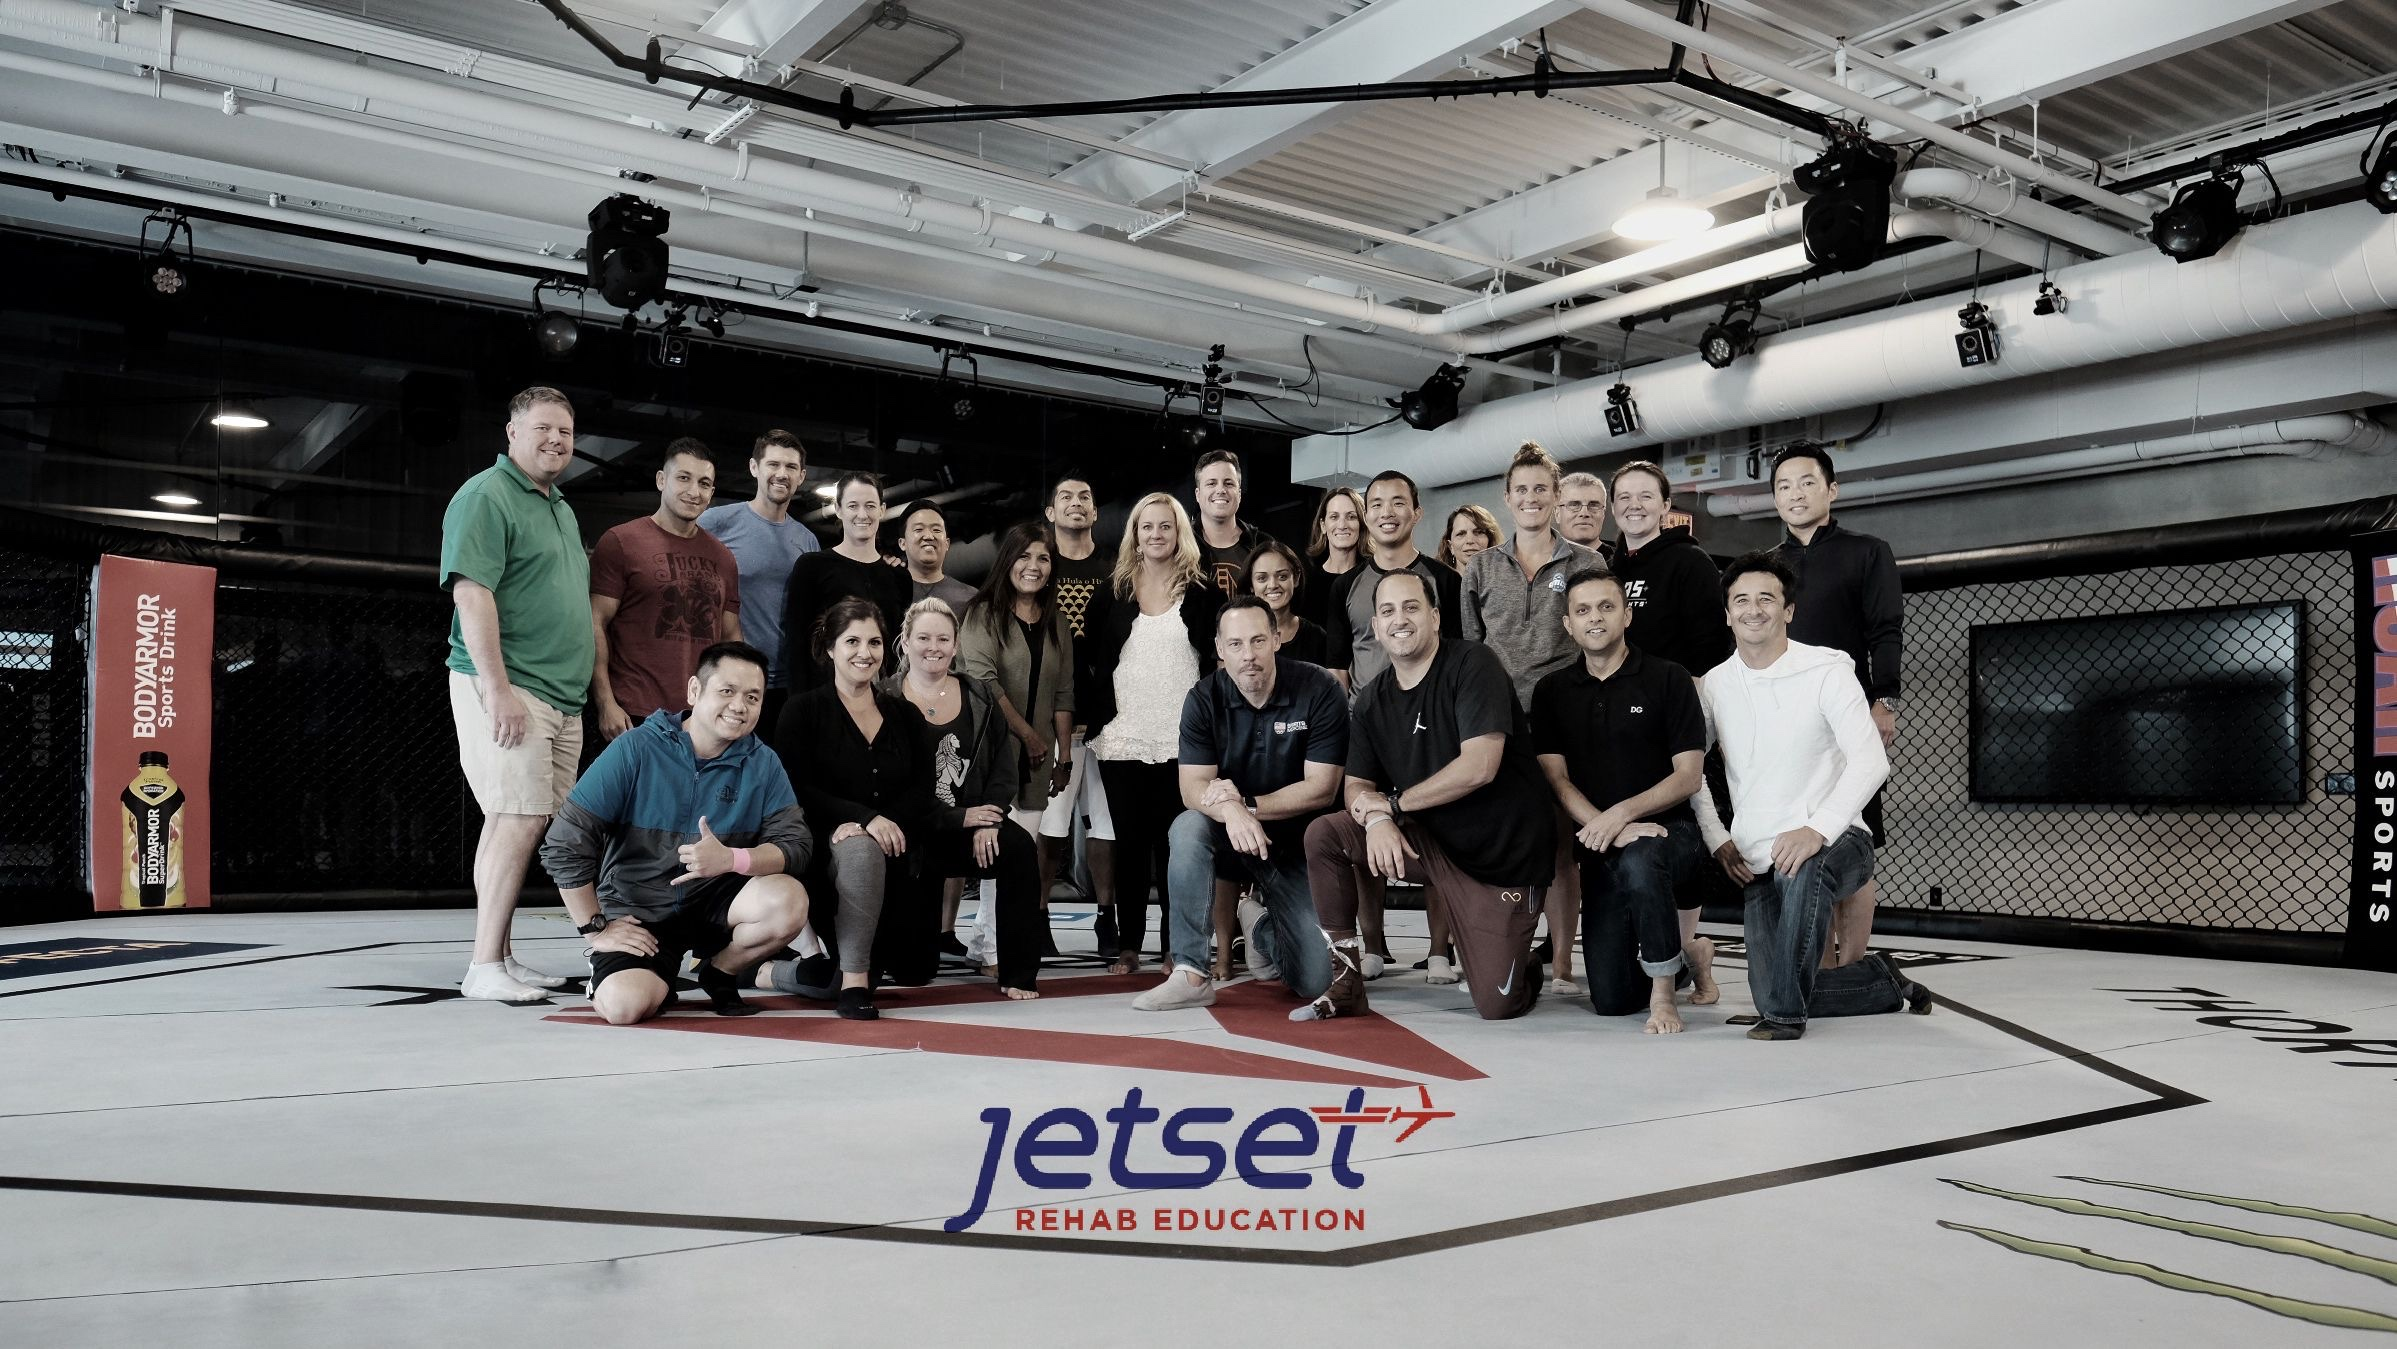 The official Jetset Rehab Education octagon photo.